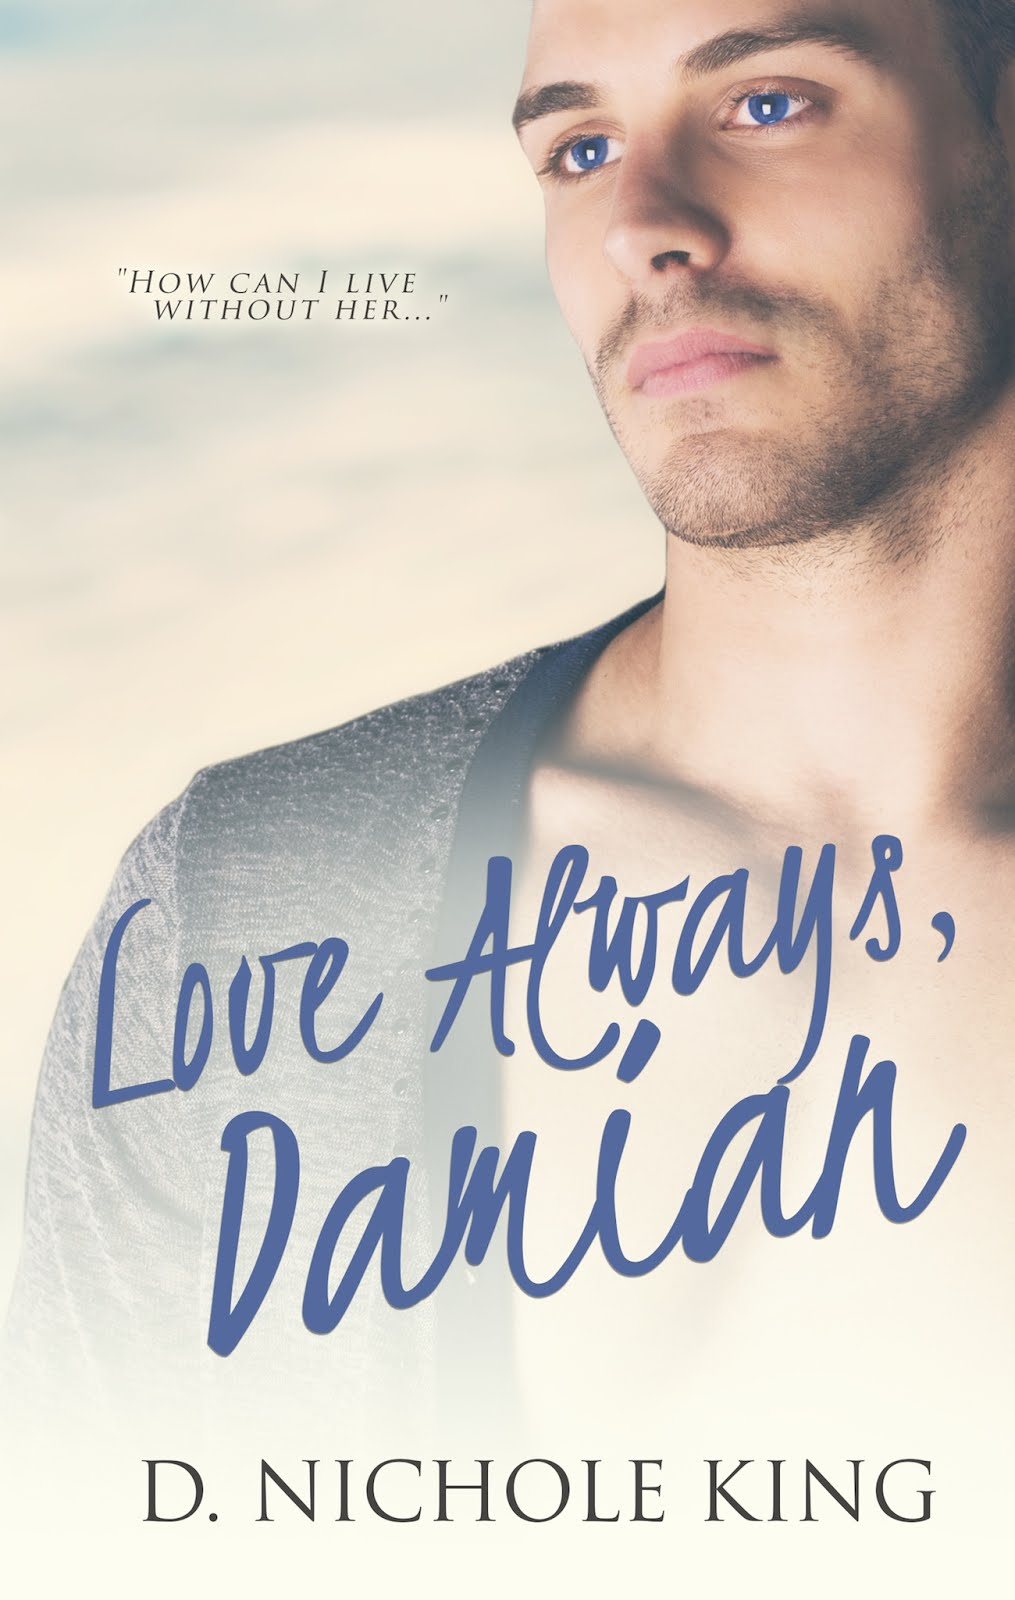 LOVE ALWAYS, DAMIAN